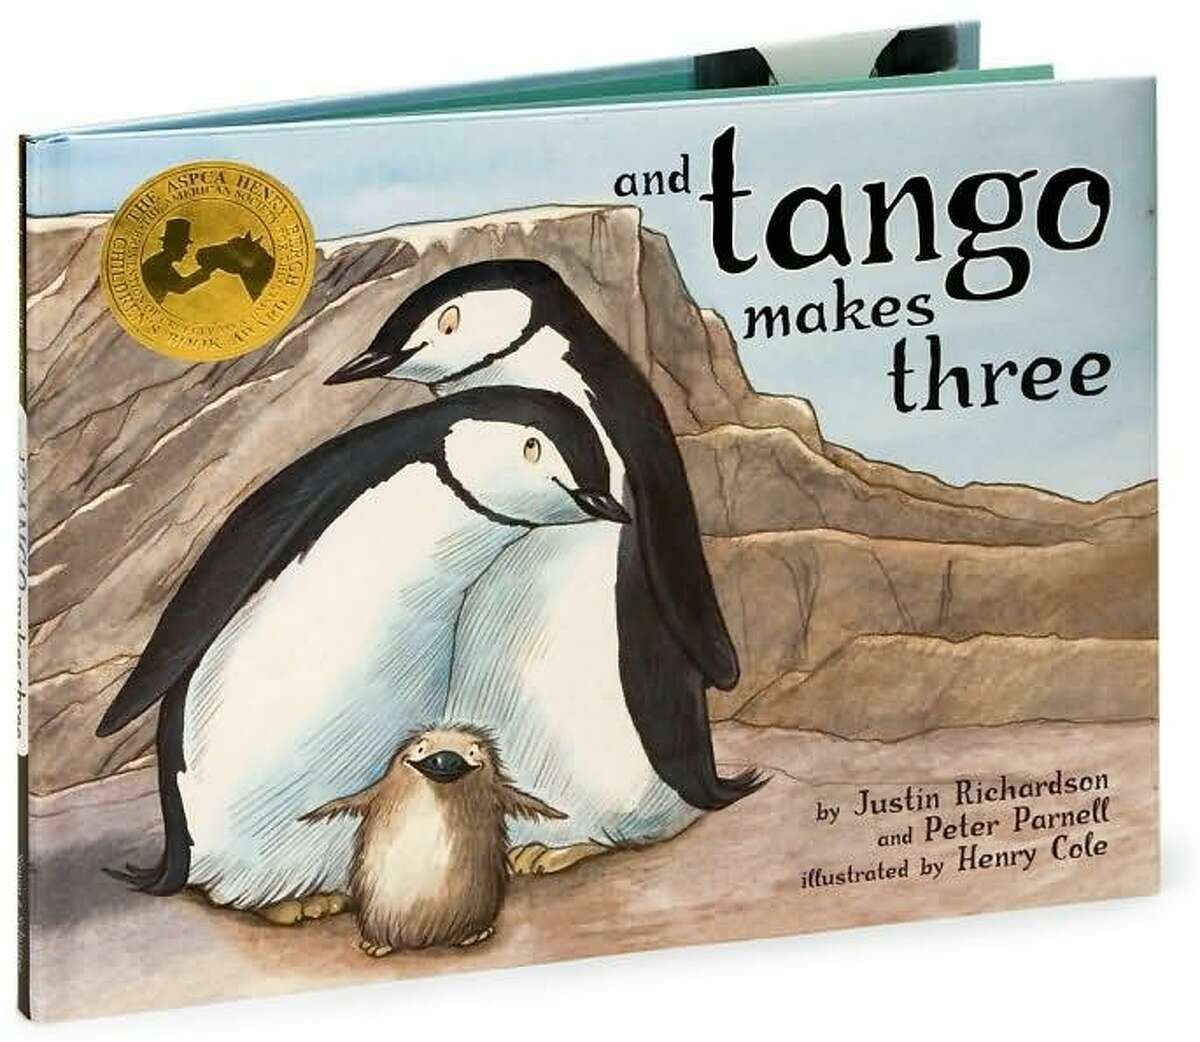 And Tango Makes Three, the story of a same-sex relationship between penguins, was one of the American Library Association's Top 10